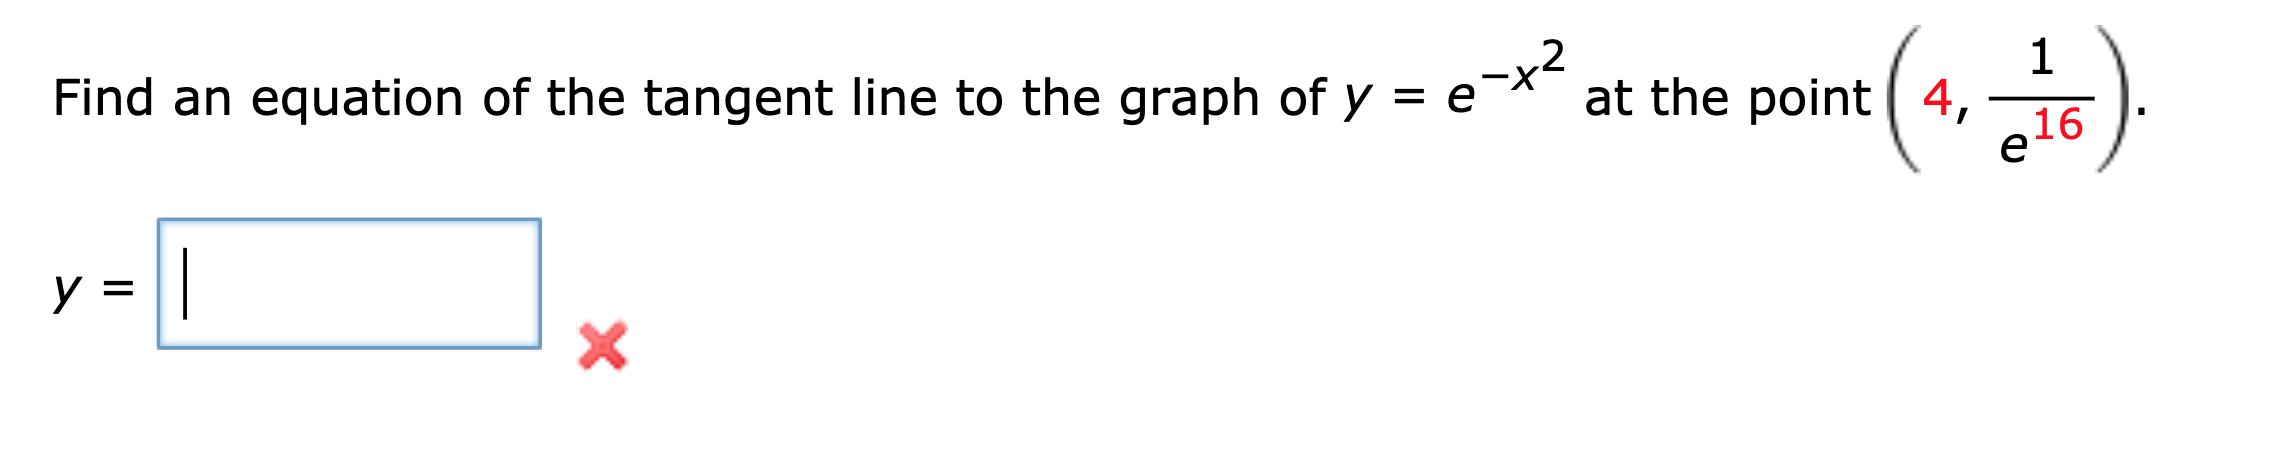 Find an equation of the tangent line to the graph of y = =e-x2 1 at the point 4, 16 е y = X